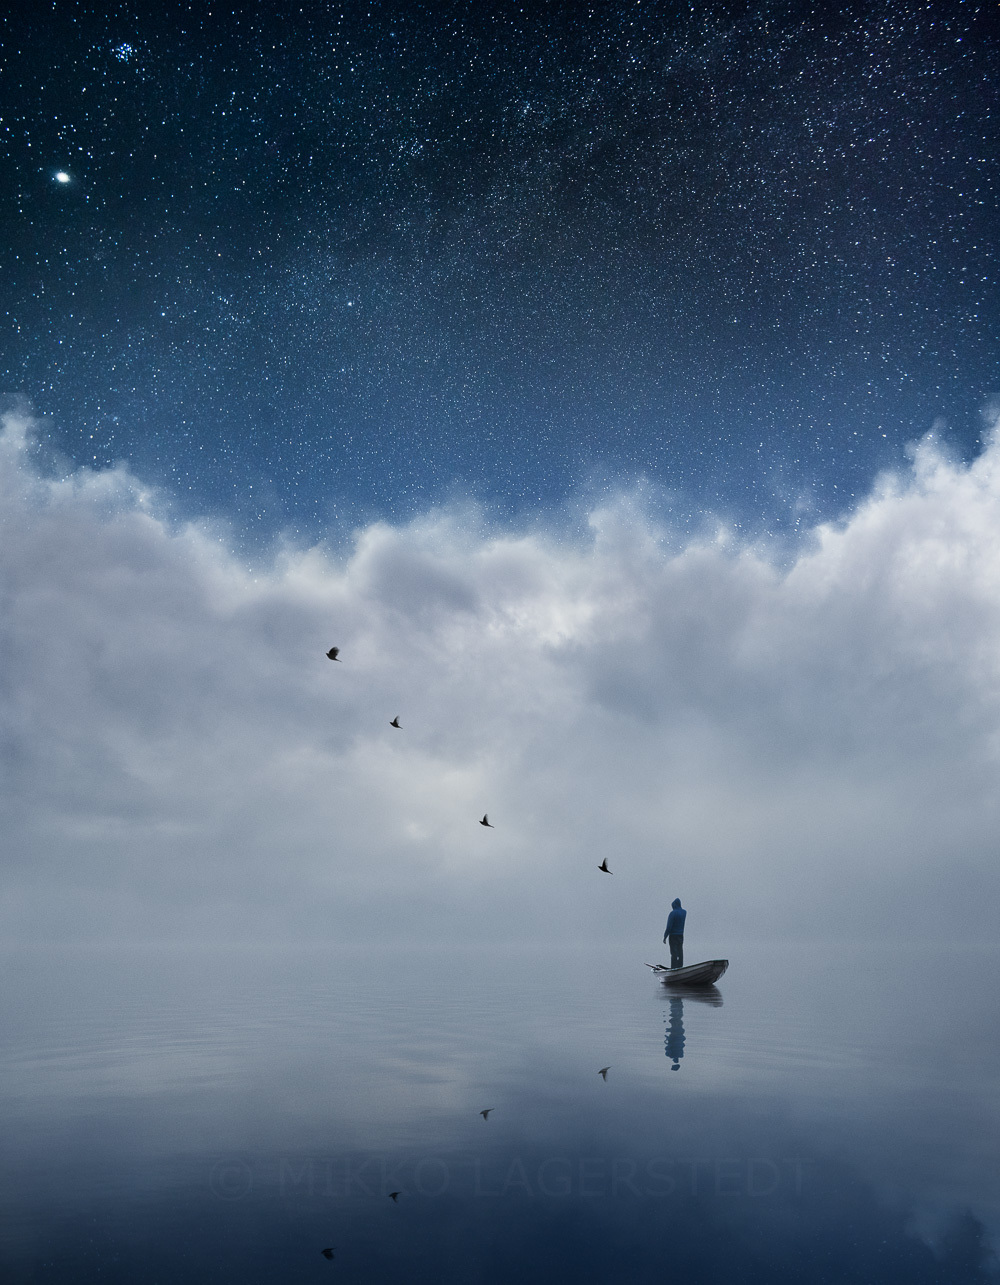 Mikko-Lagerstedt-Dream